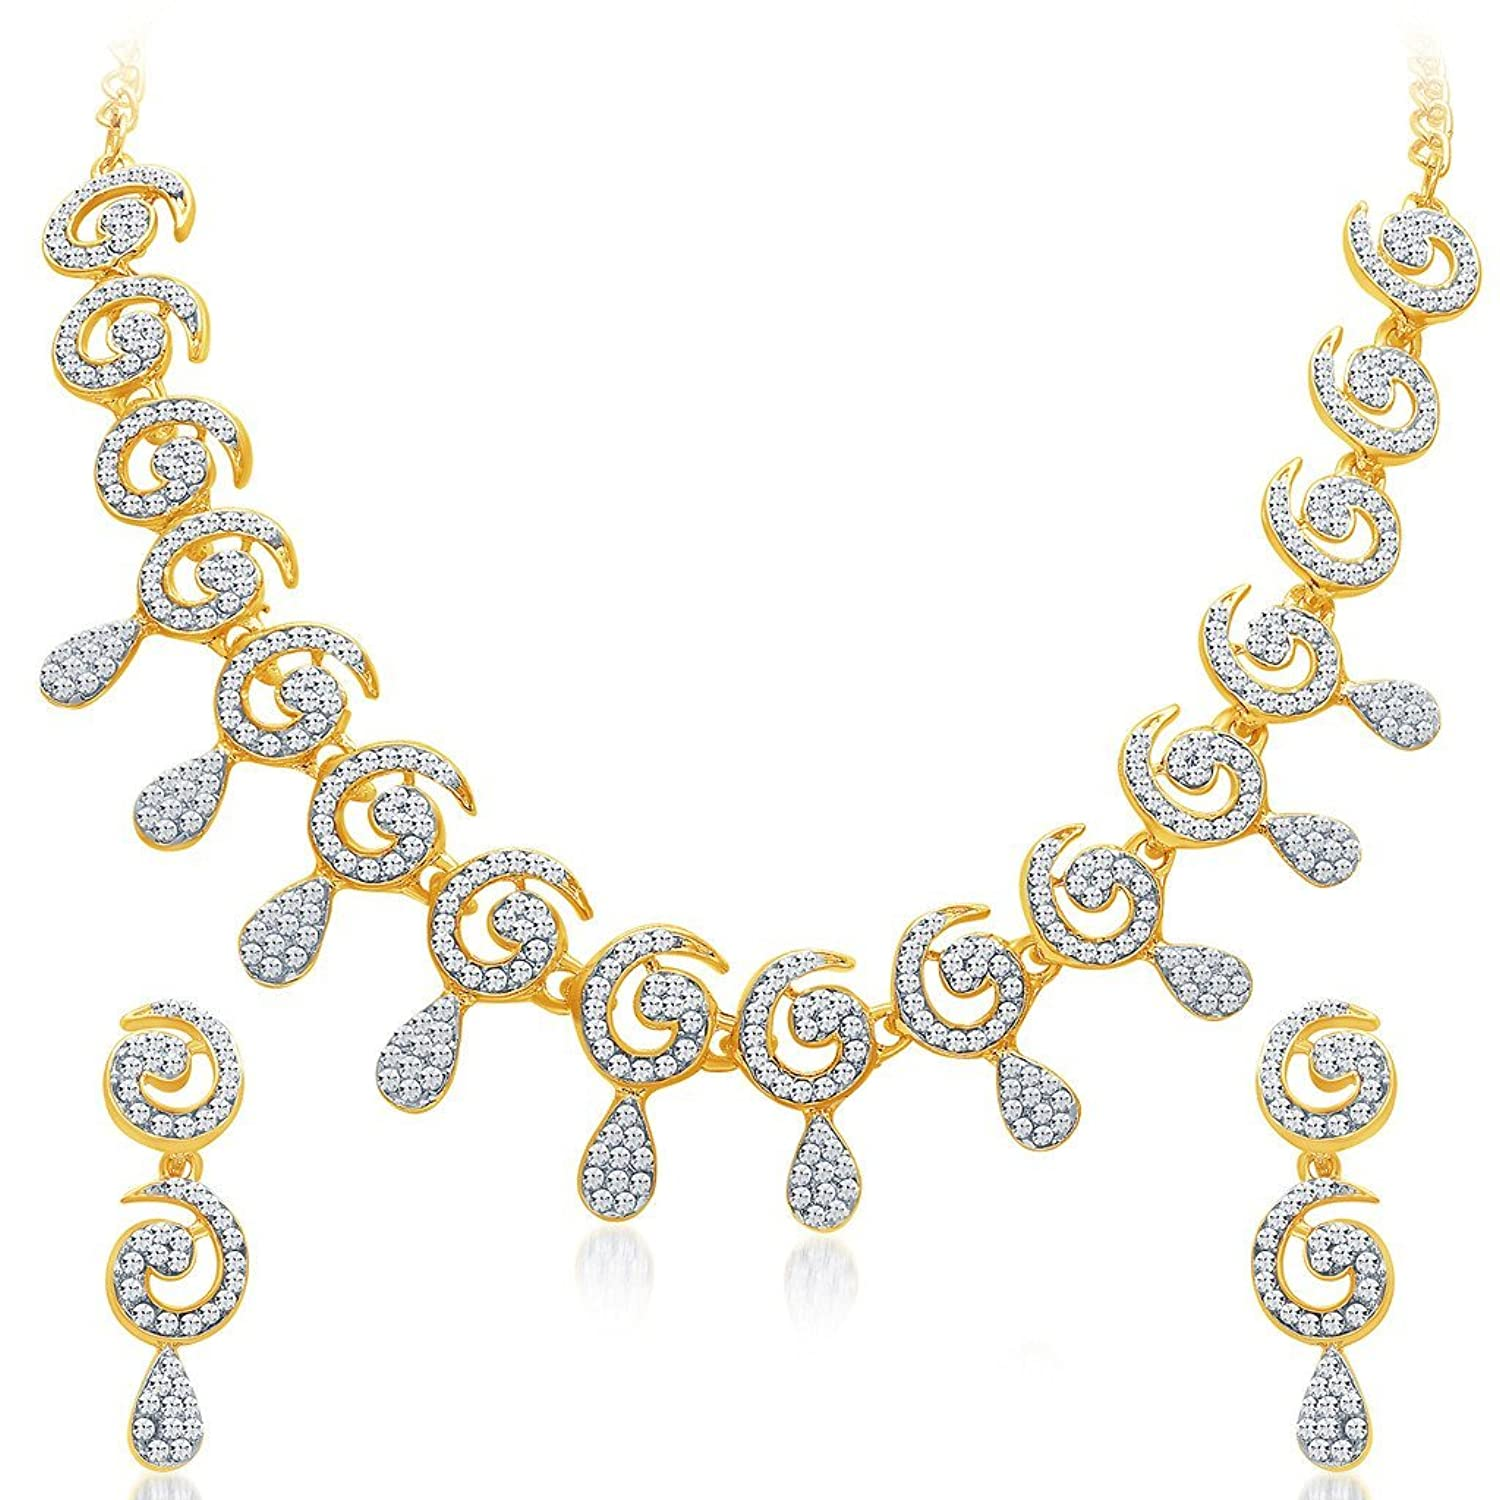 on by gold sappidi about pinterest ideas reddy pin discover spandana indian temple jewelry jewellery necklace diamond